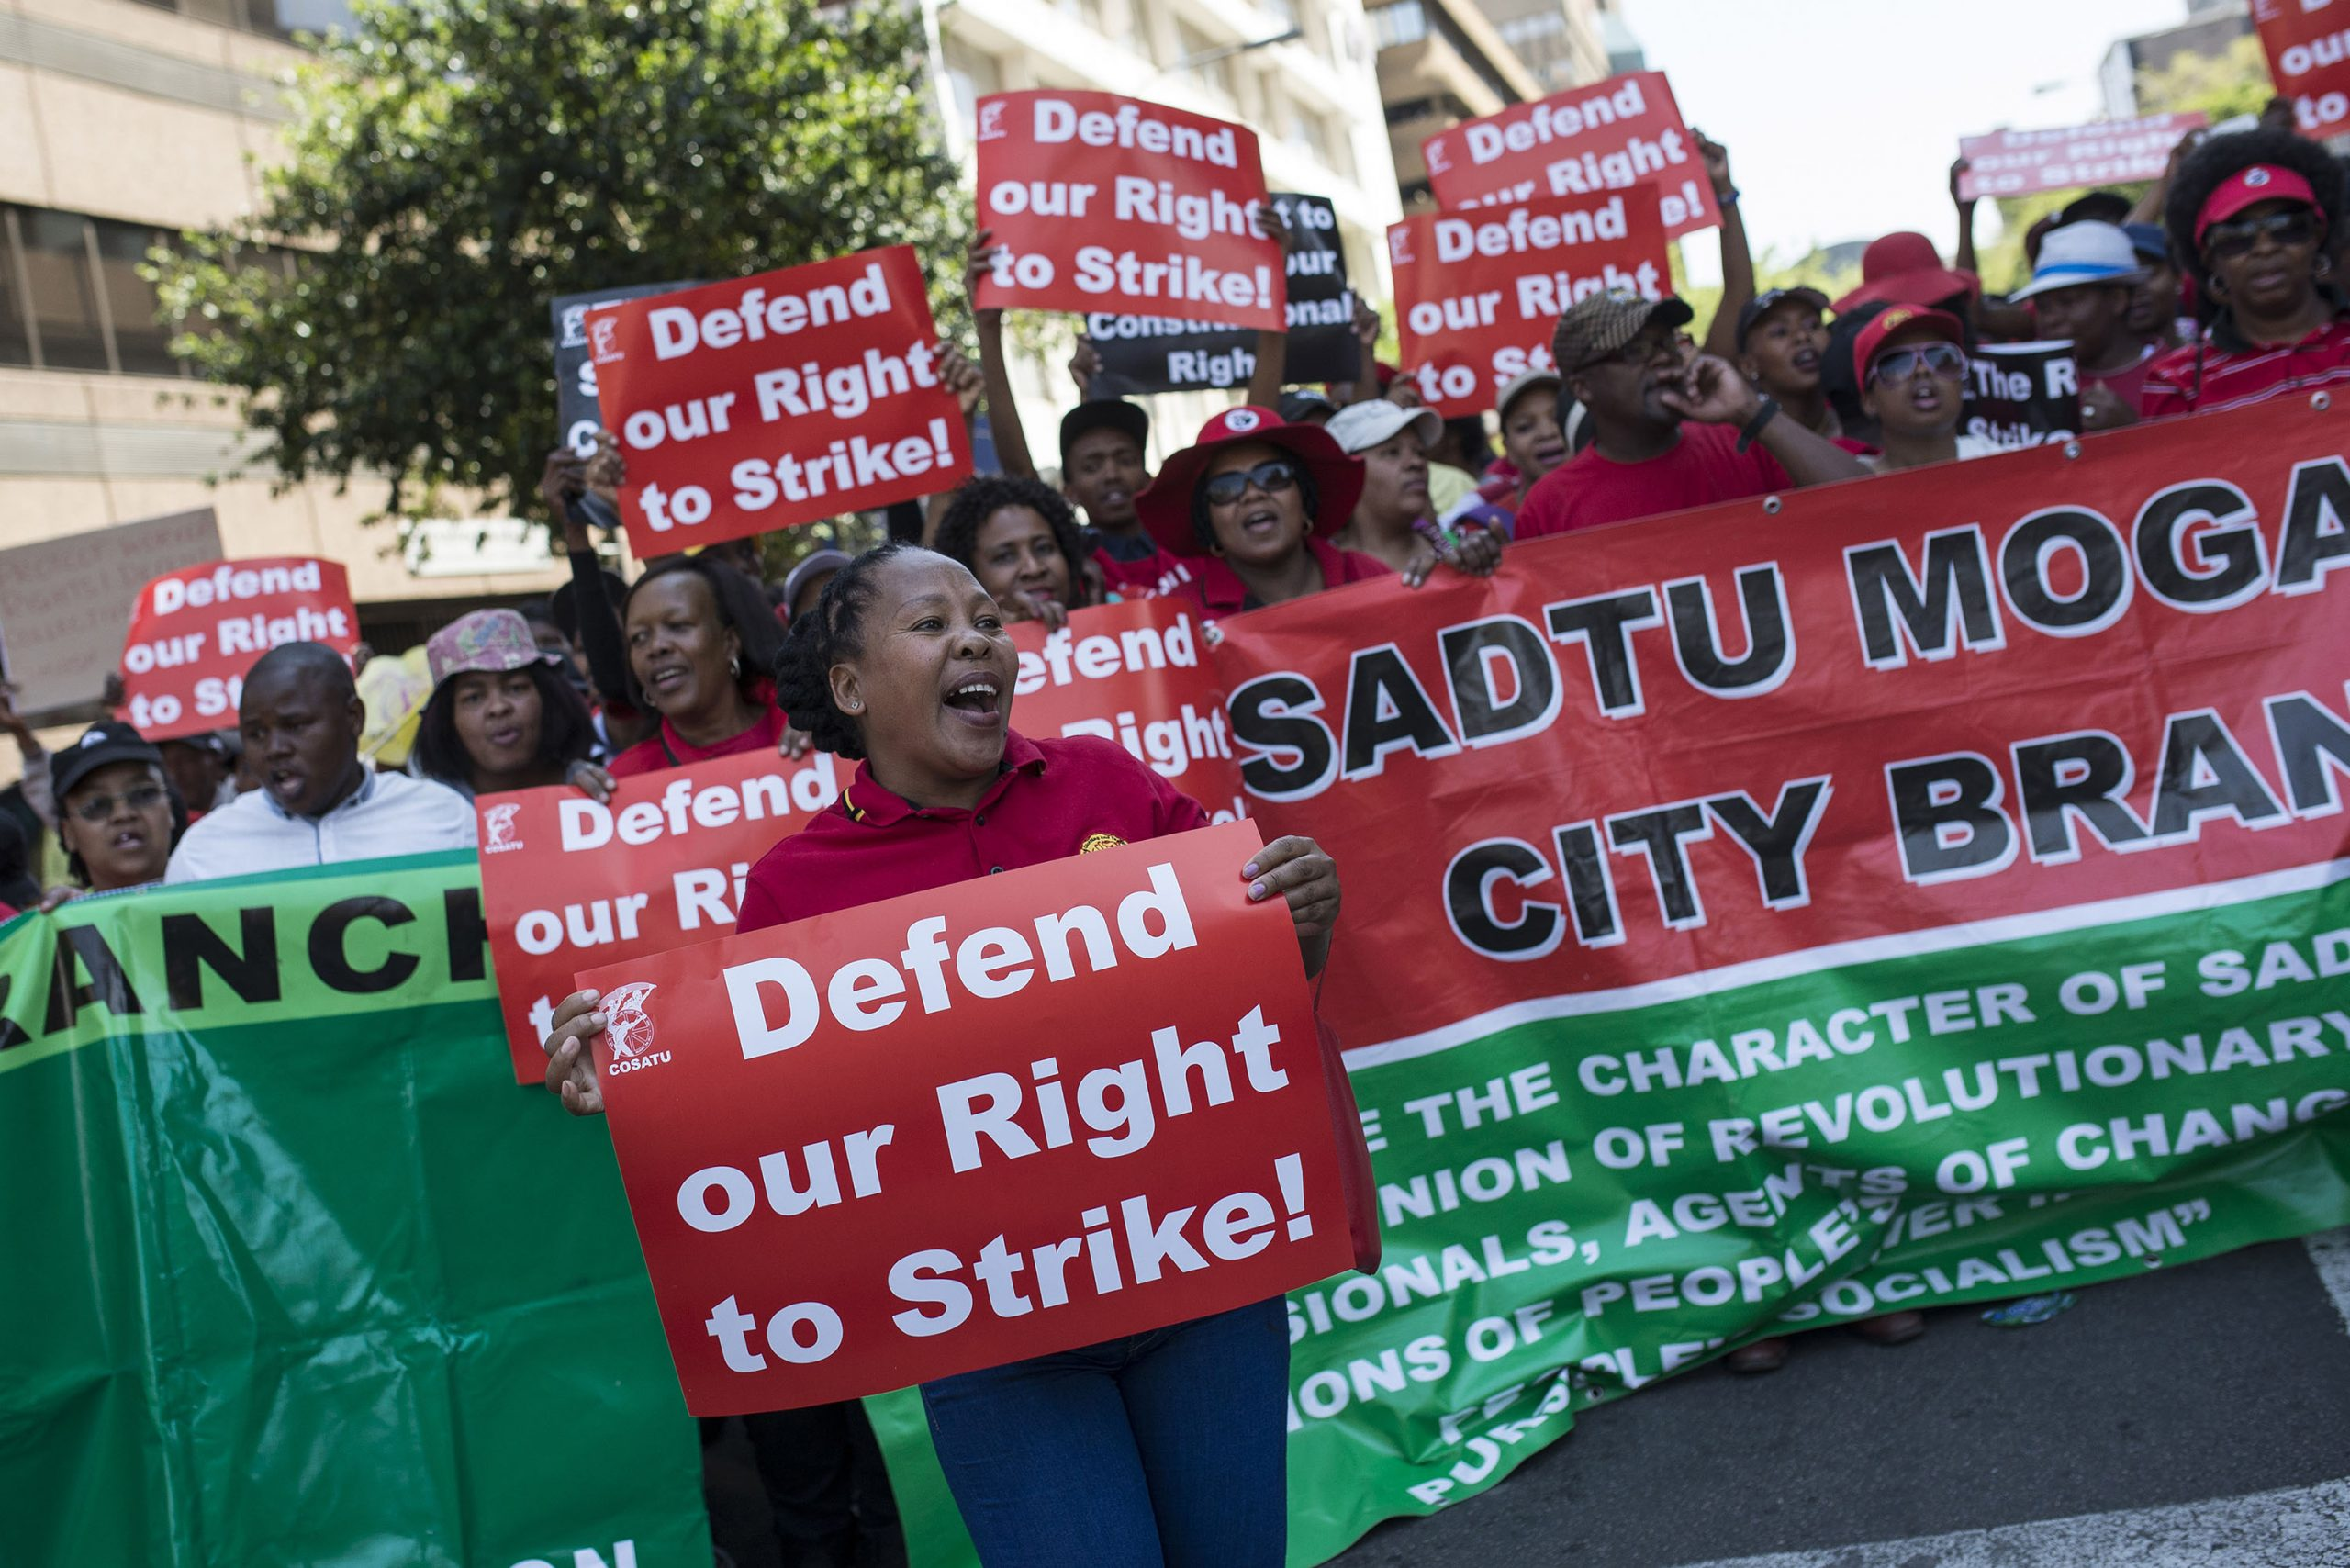 7 October 2016: Workers affiliated to the Congress of South African Trade Unions embark on a national strike demanding better working conditions. Nedlac has been reprioritising the 2018 jobs pact to boost certain areas in response to Covid-19.